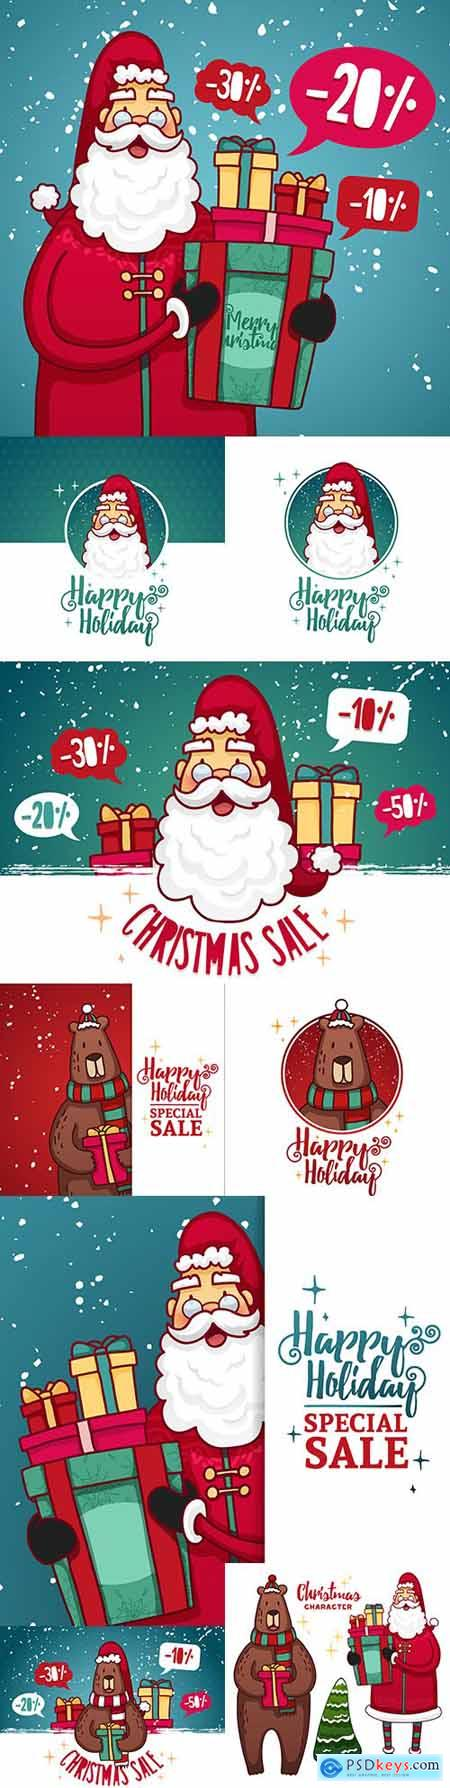 Banner for Christmas with Santa and bear design template